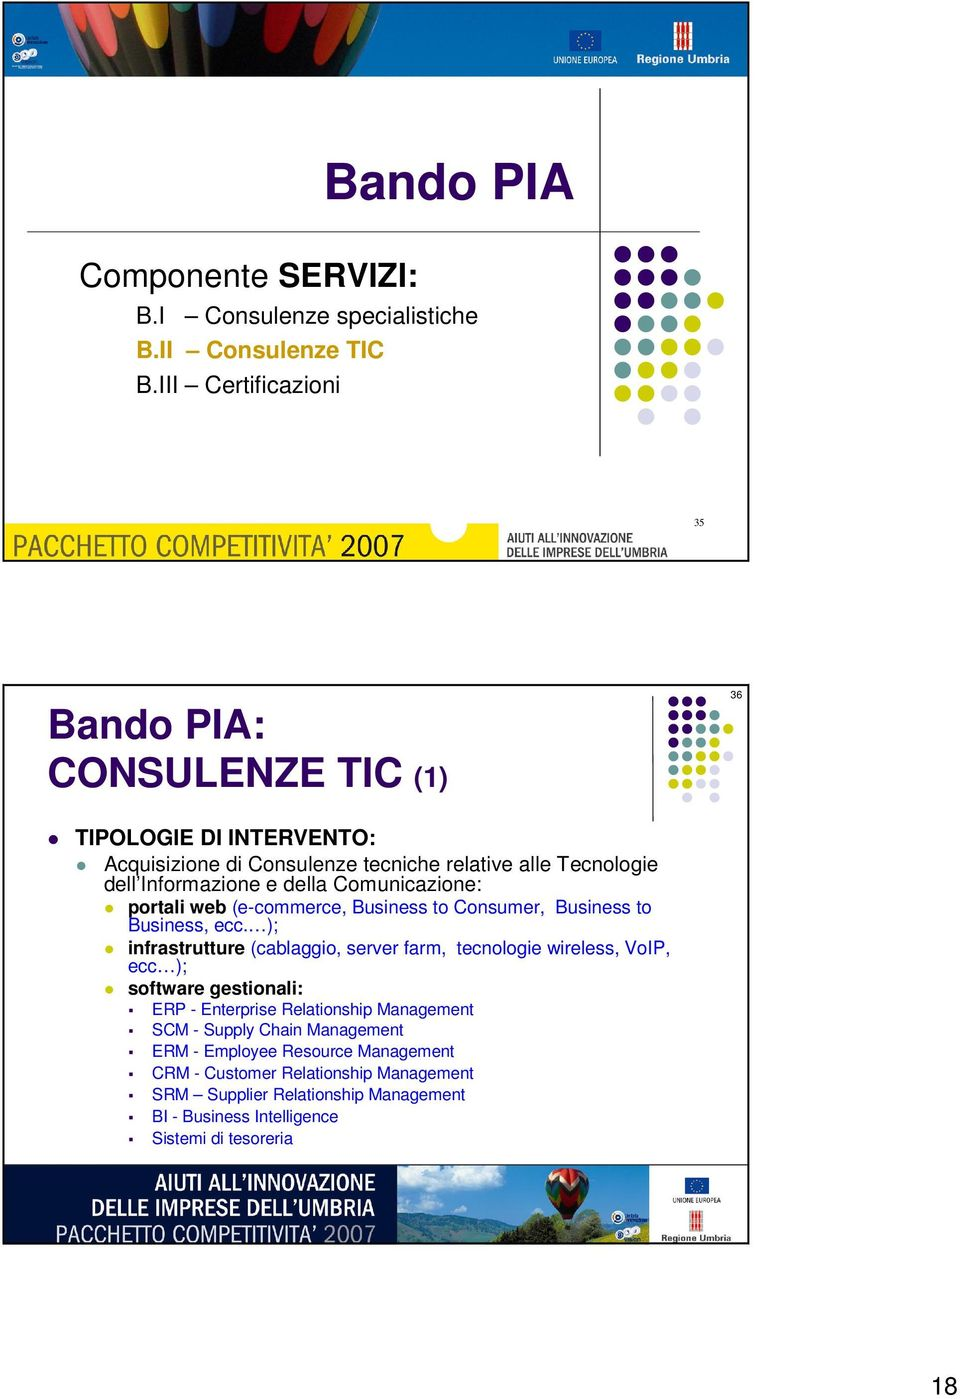 Comunicazione: portali web (e-commerce, Business to Consumer, Business to Business, ecc.